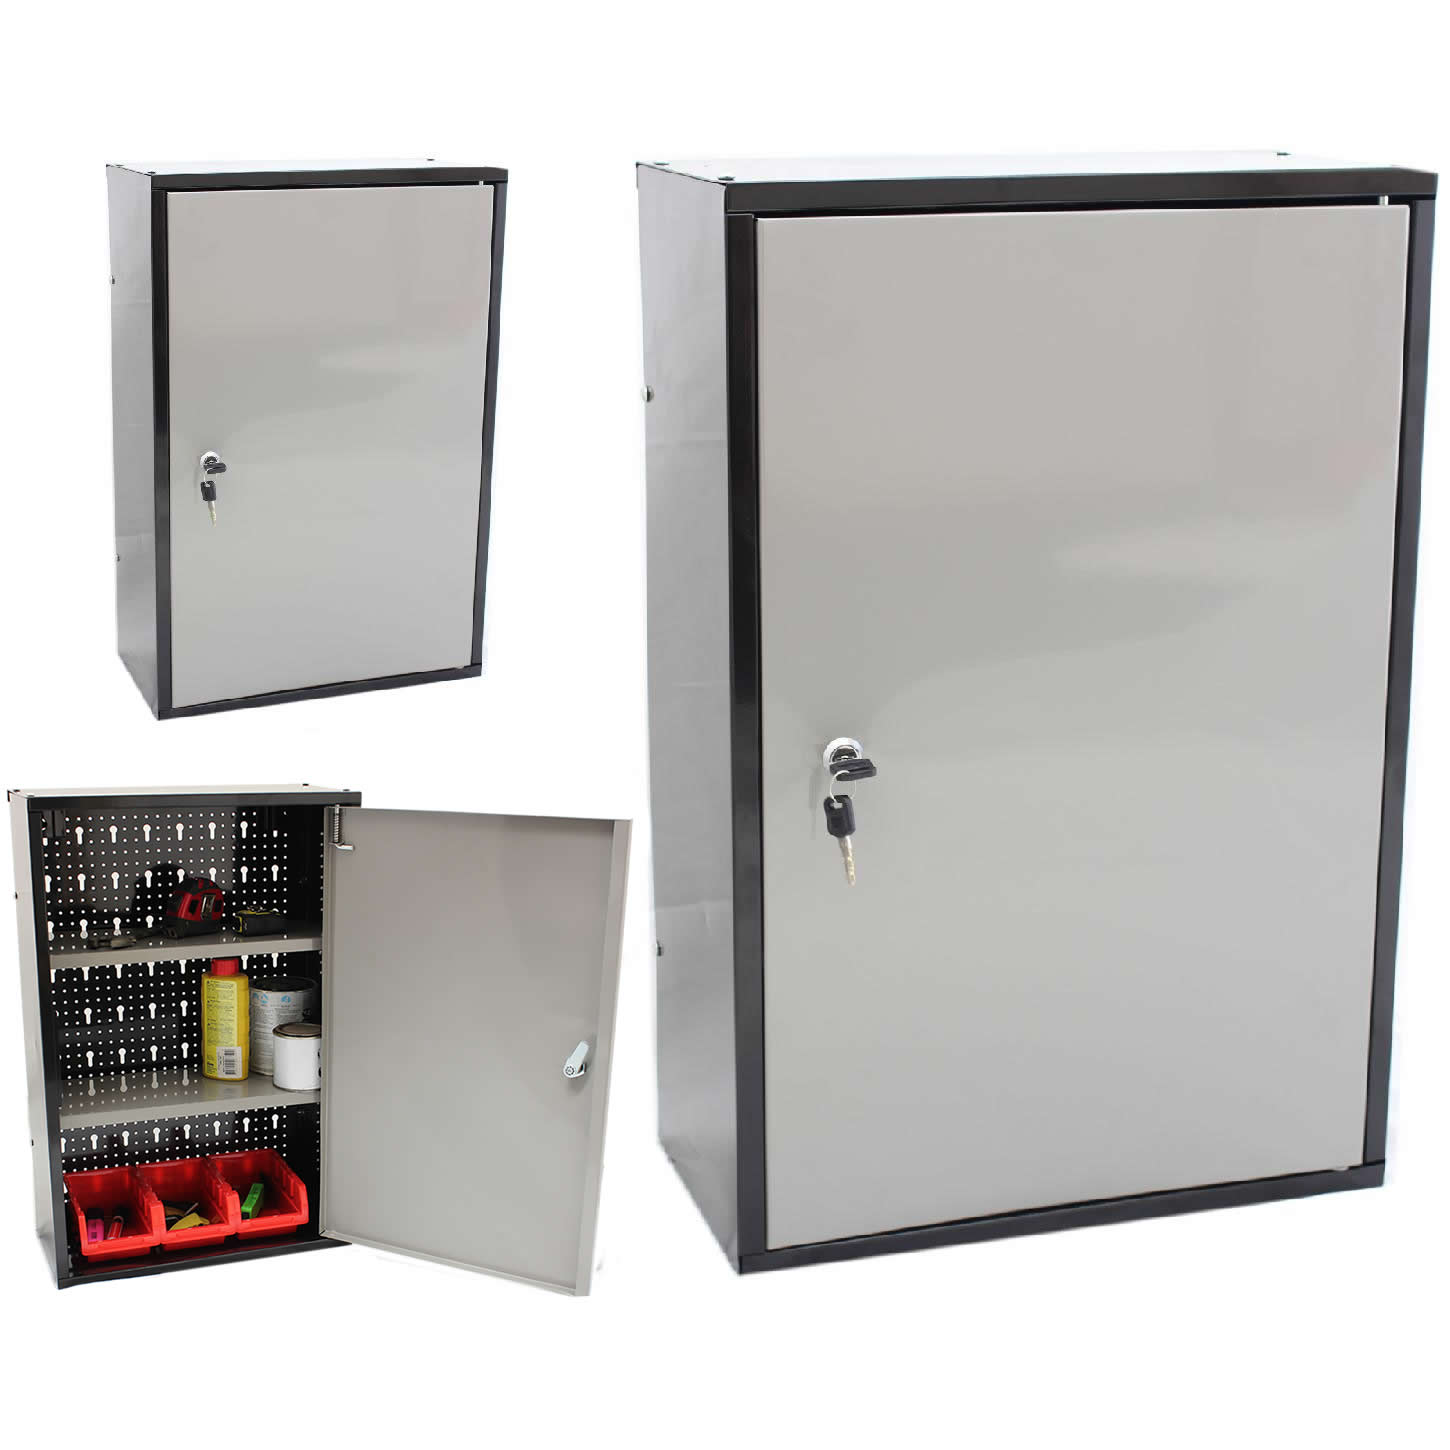 LOCKABLE METAL GARAGESHED STORAGE CABINET WALL UNIT TOOL